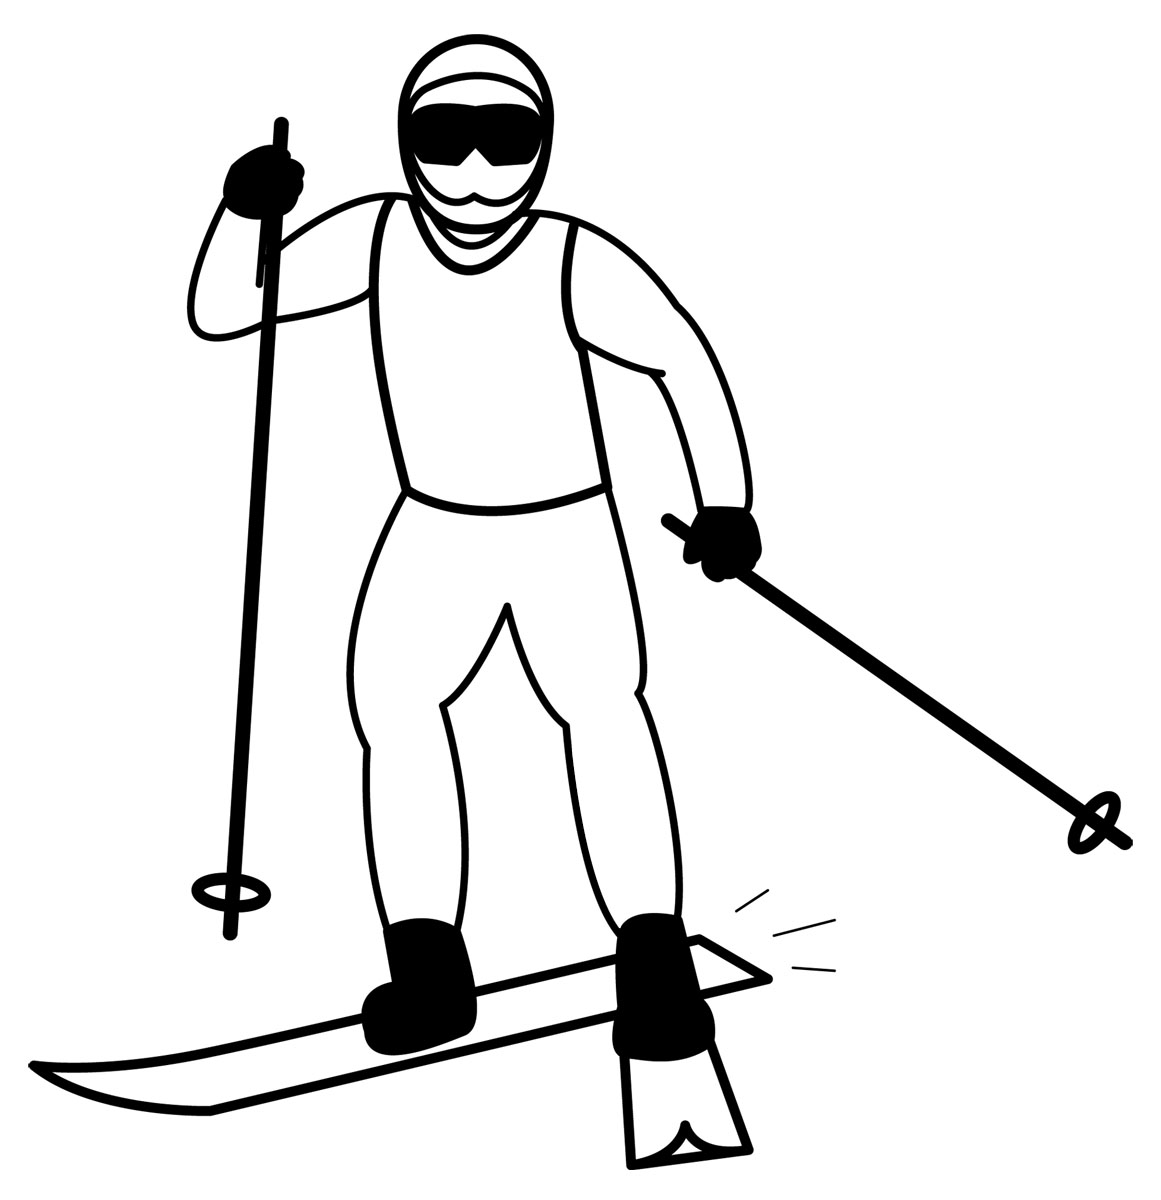 1161x1200 Ski Clipart Black And White